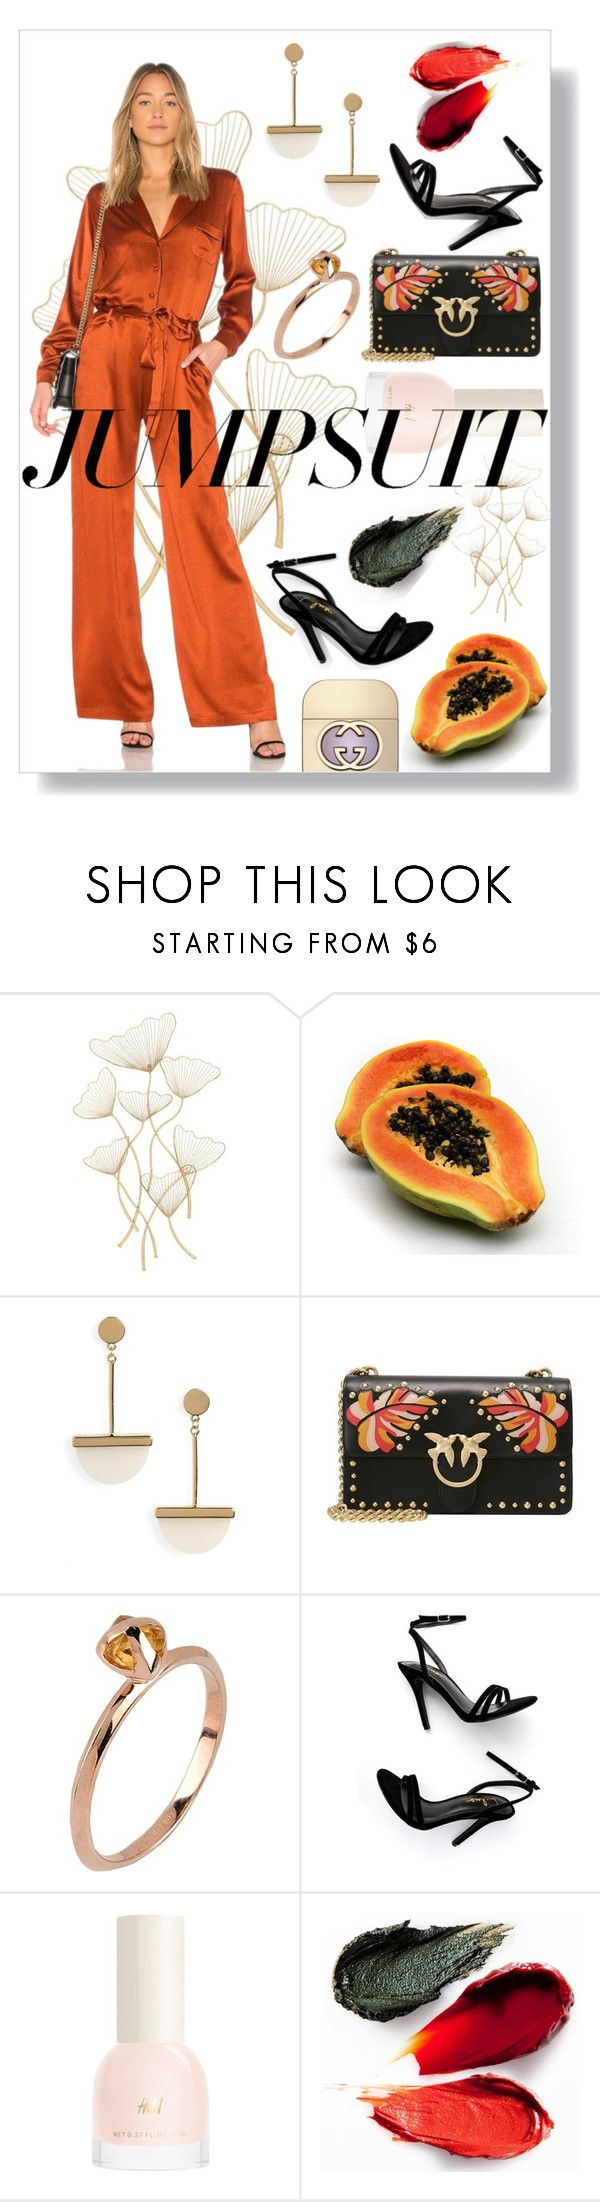 """""""Papaya chic - jumpsuit"""" by mariyushka on Polyvore featuring Topshop, Pinko, Katie Rowland, LULUS, Rituel de Fille, Gucci and jumpsuits"""